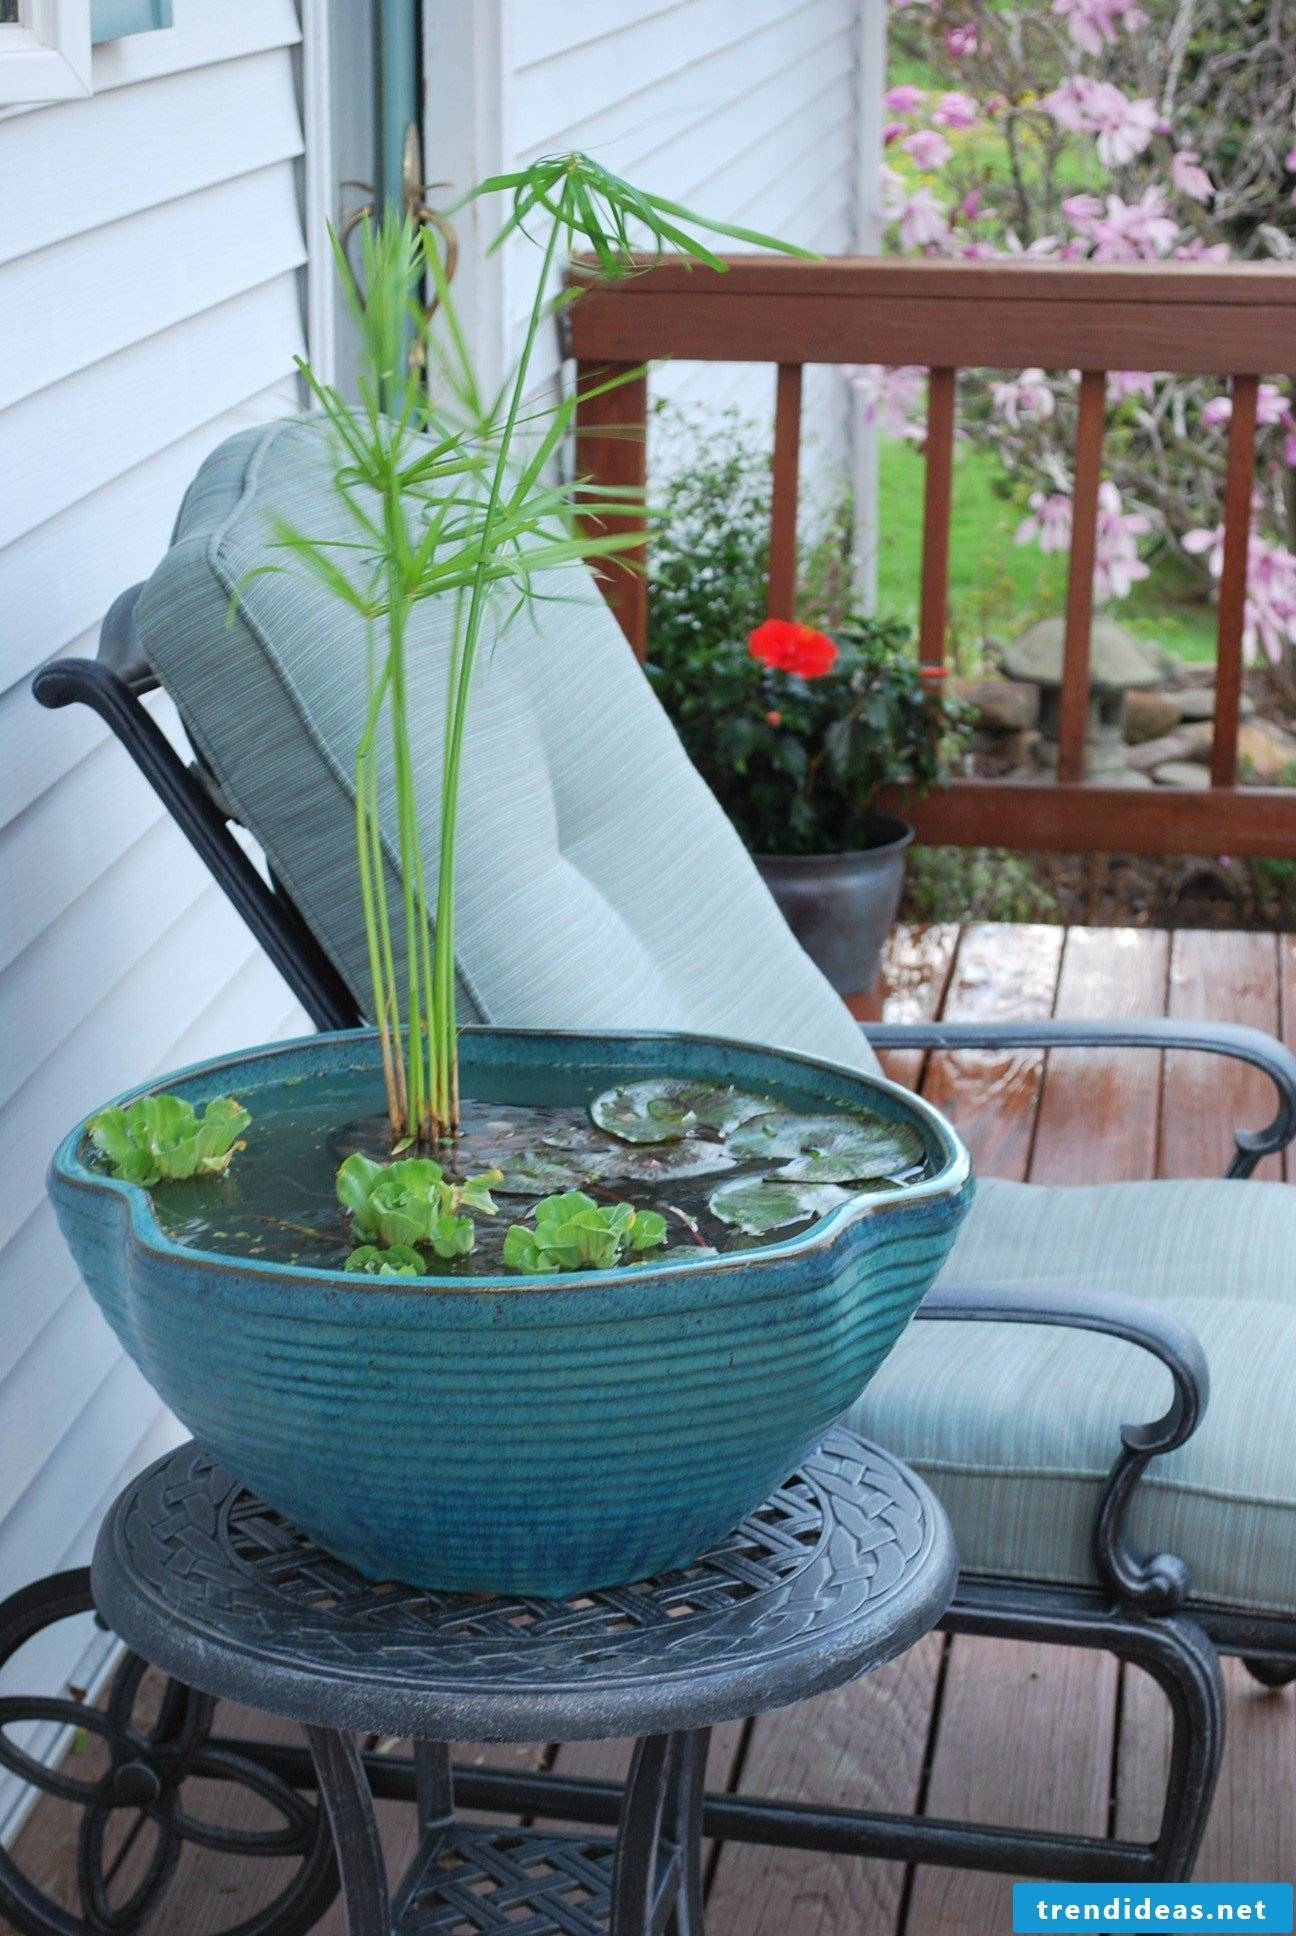 DIY mini-pond in the pot: step by step